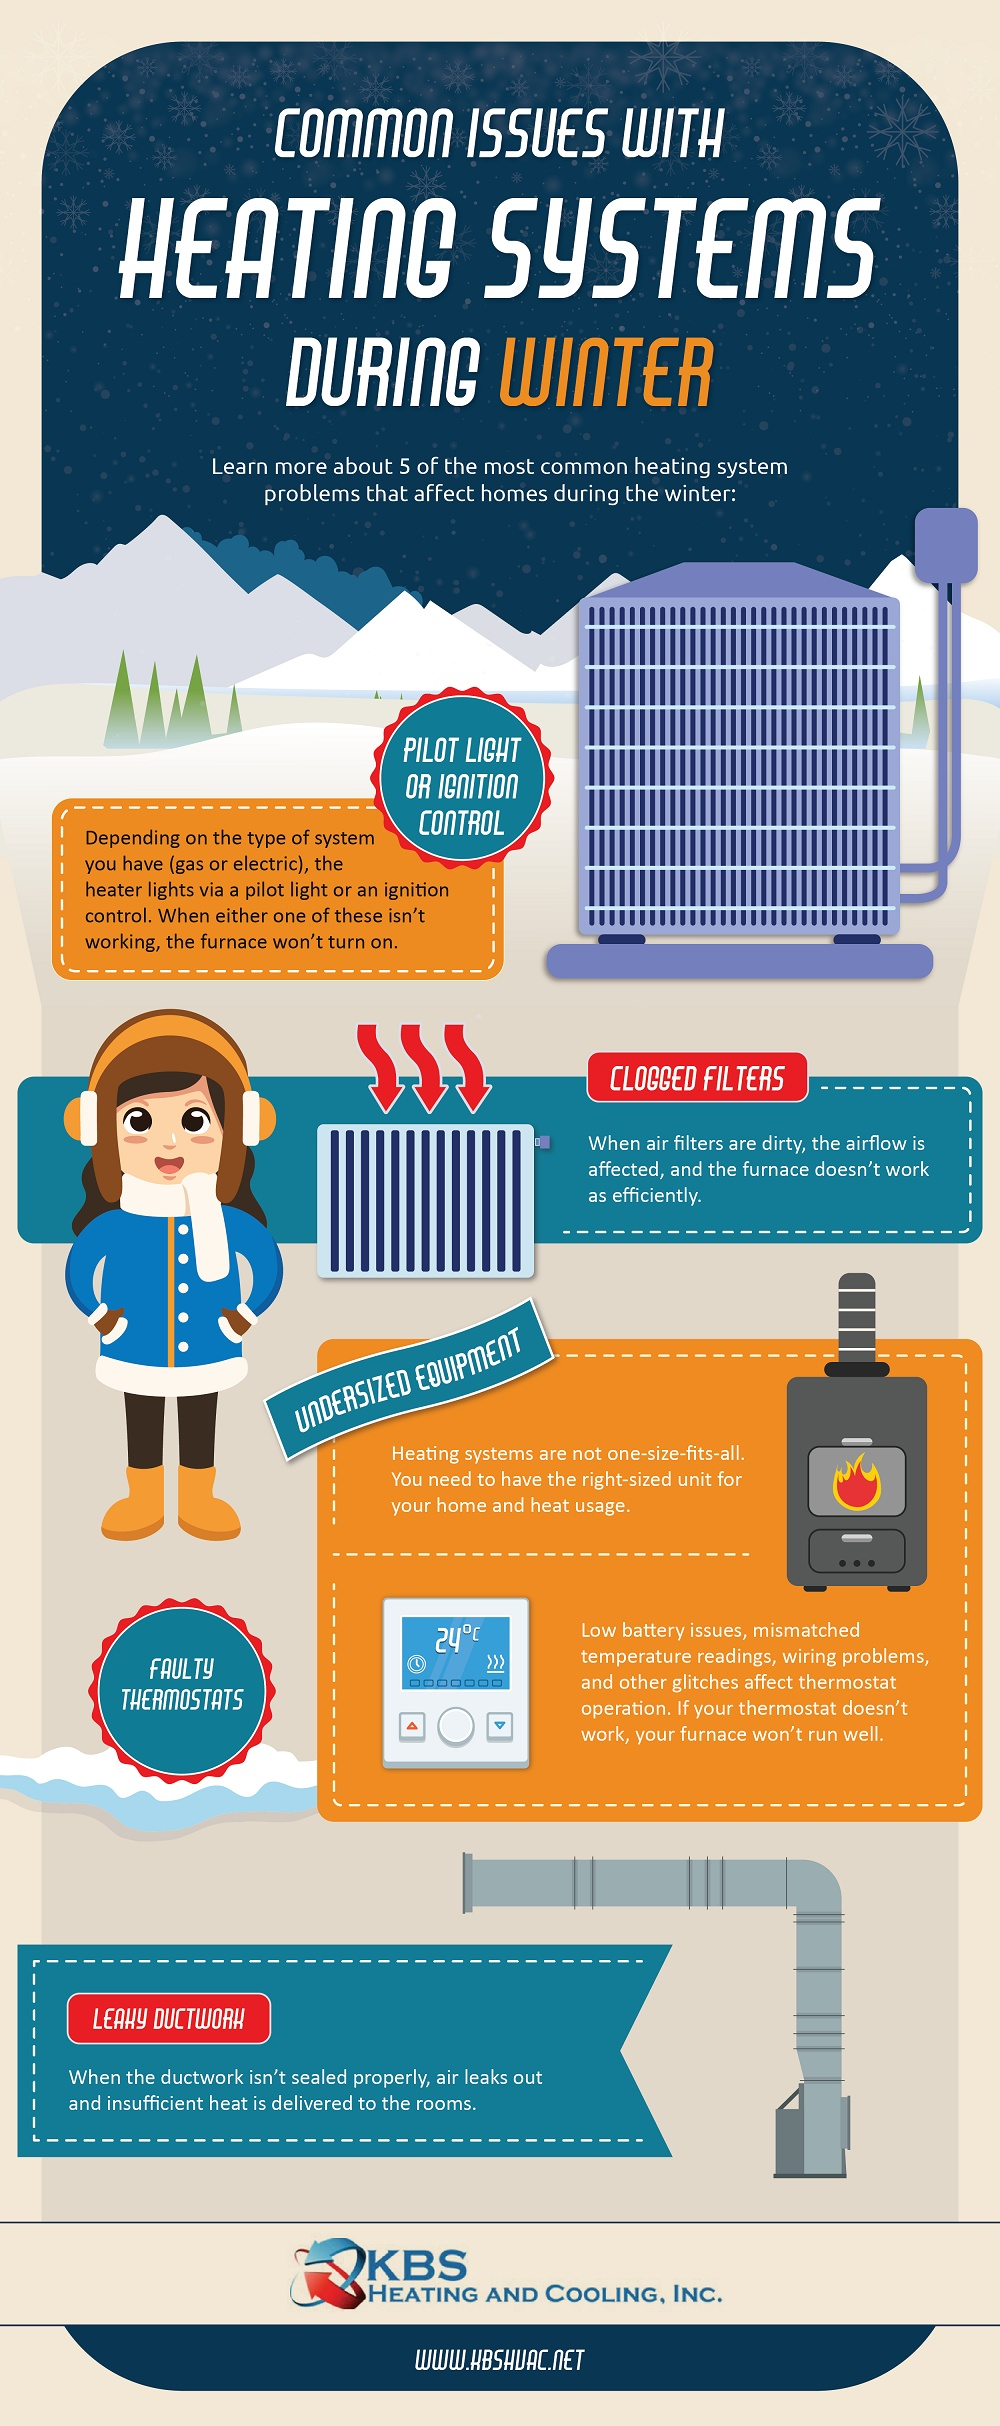 Common Issues With Heating Systems During Winter